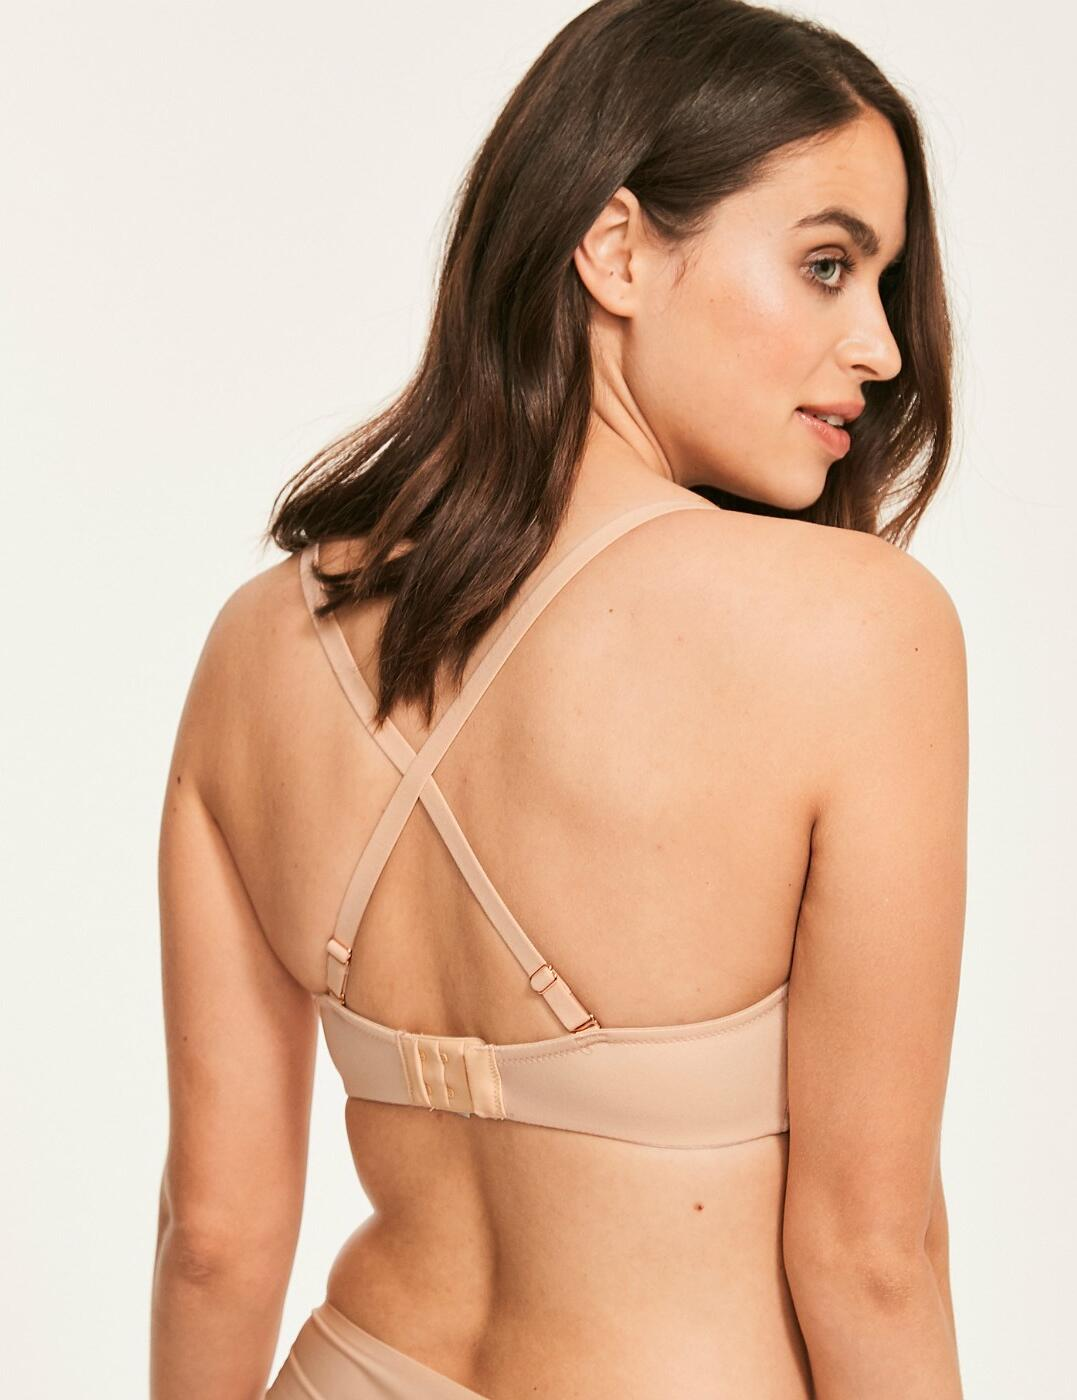 Figleaves Smoothing Bra 1831021 Underwired Sweetheart Full Cup T-Shirt Bras